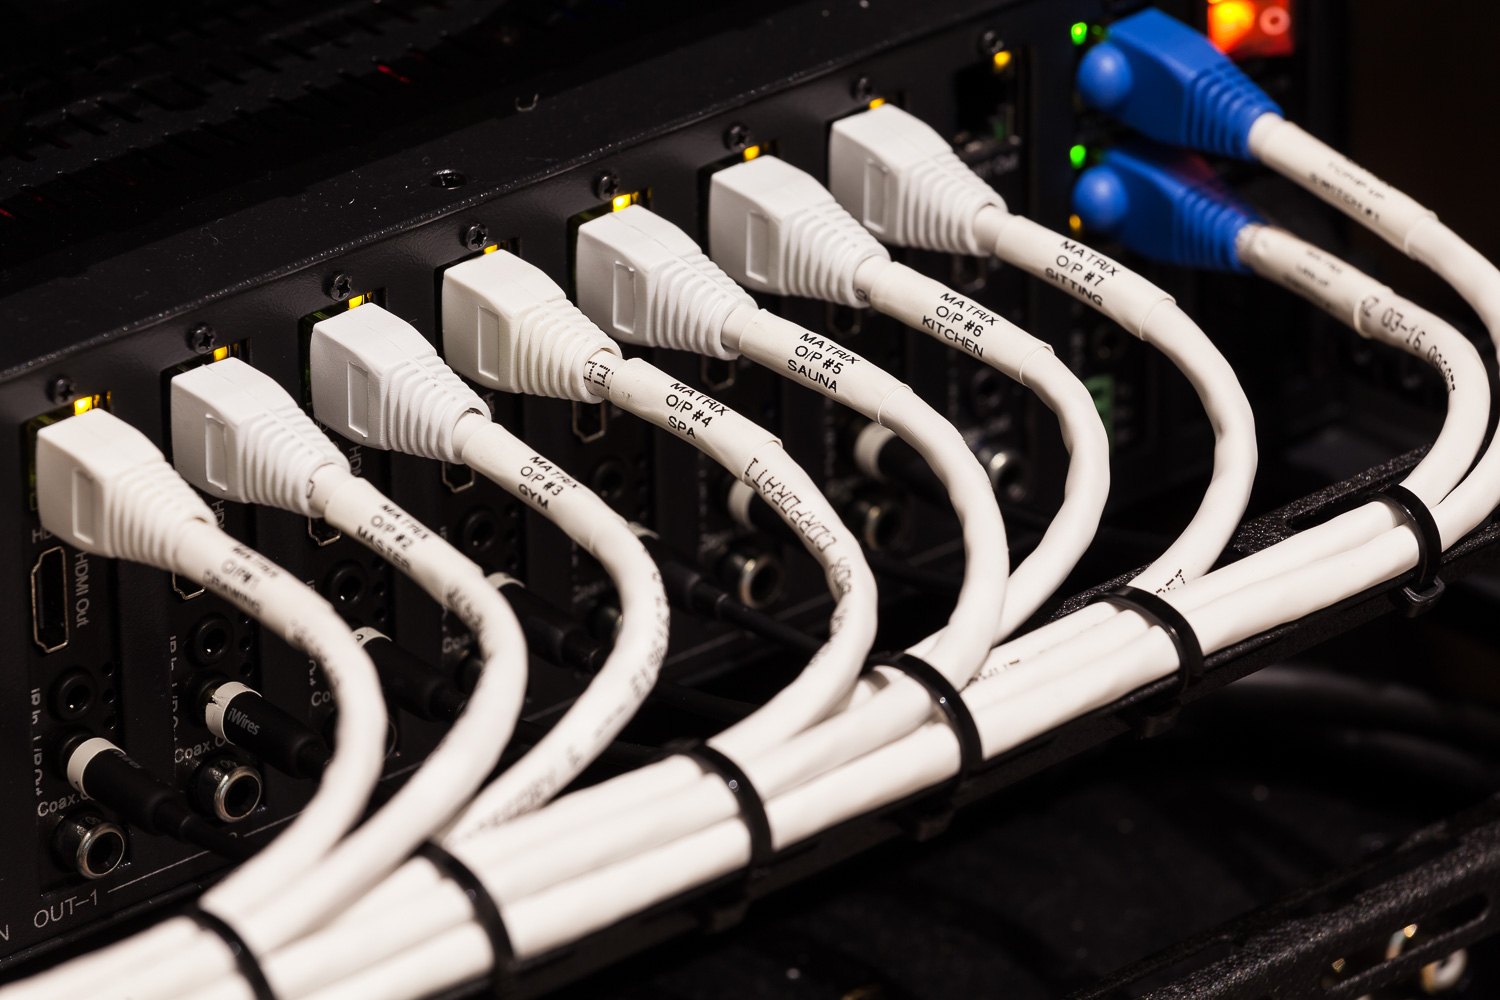 An example of our neat and tidy cabling